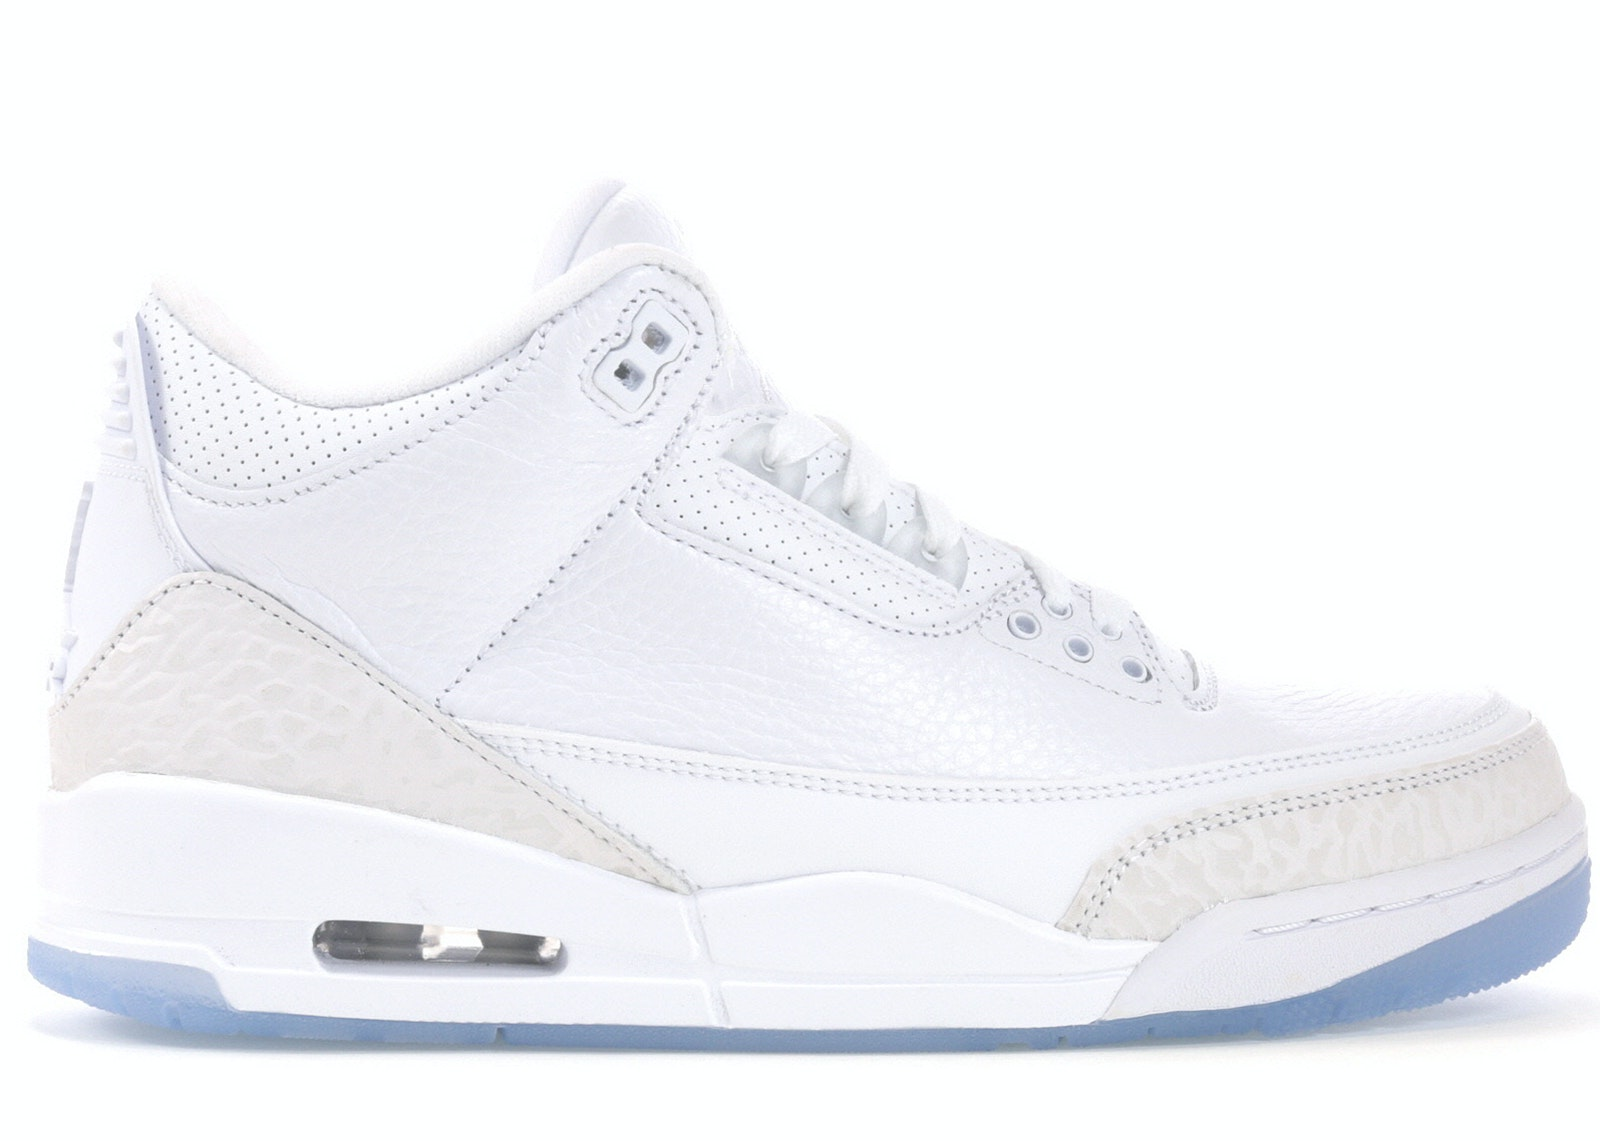 Jordan 3 Retro Pure White (2018)